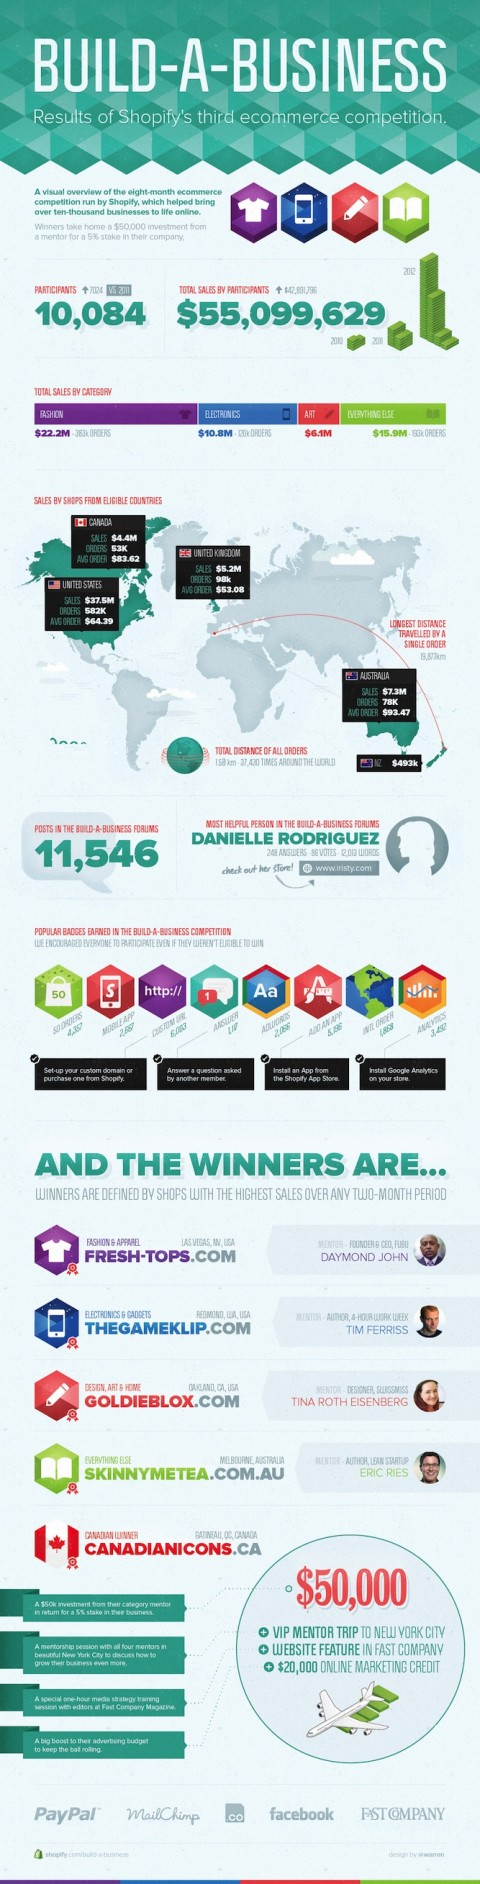 shopify-build-a-business-competition-infographic